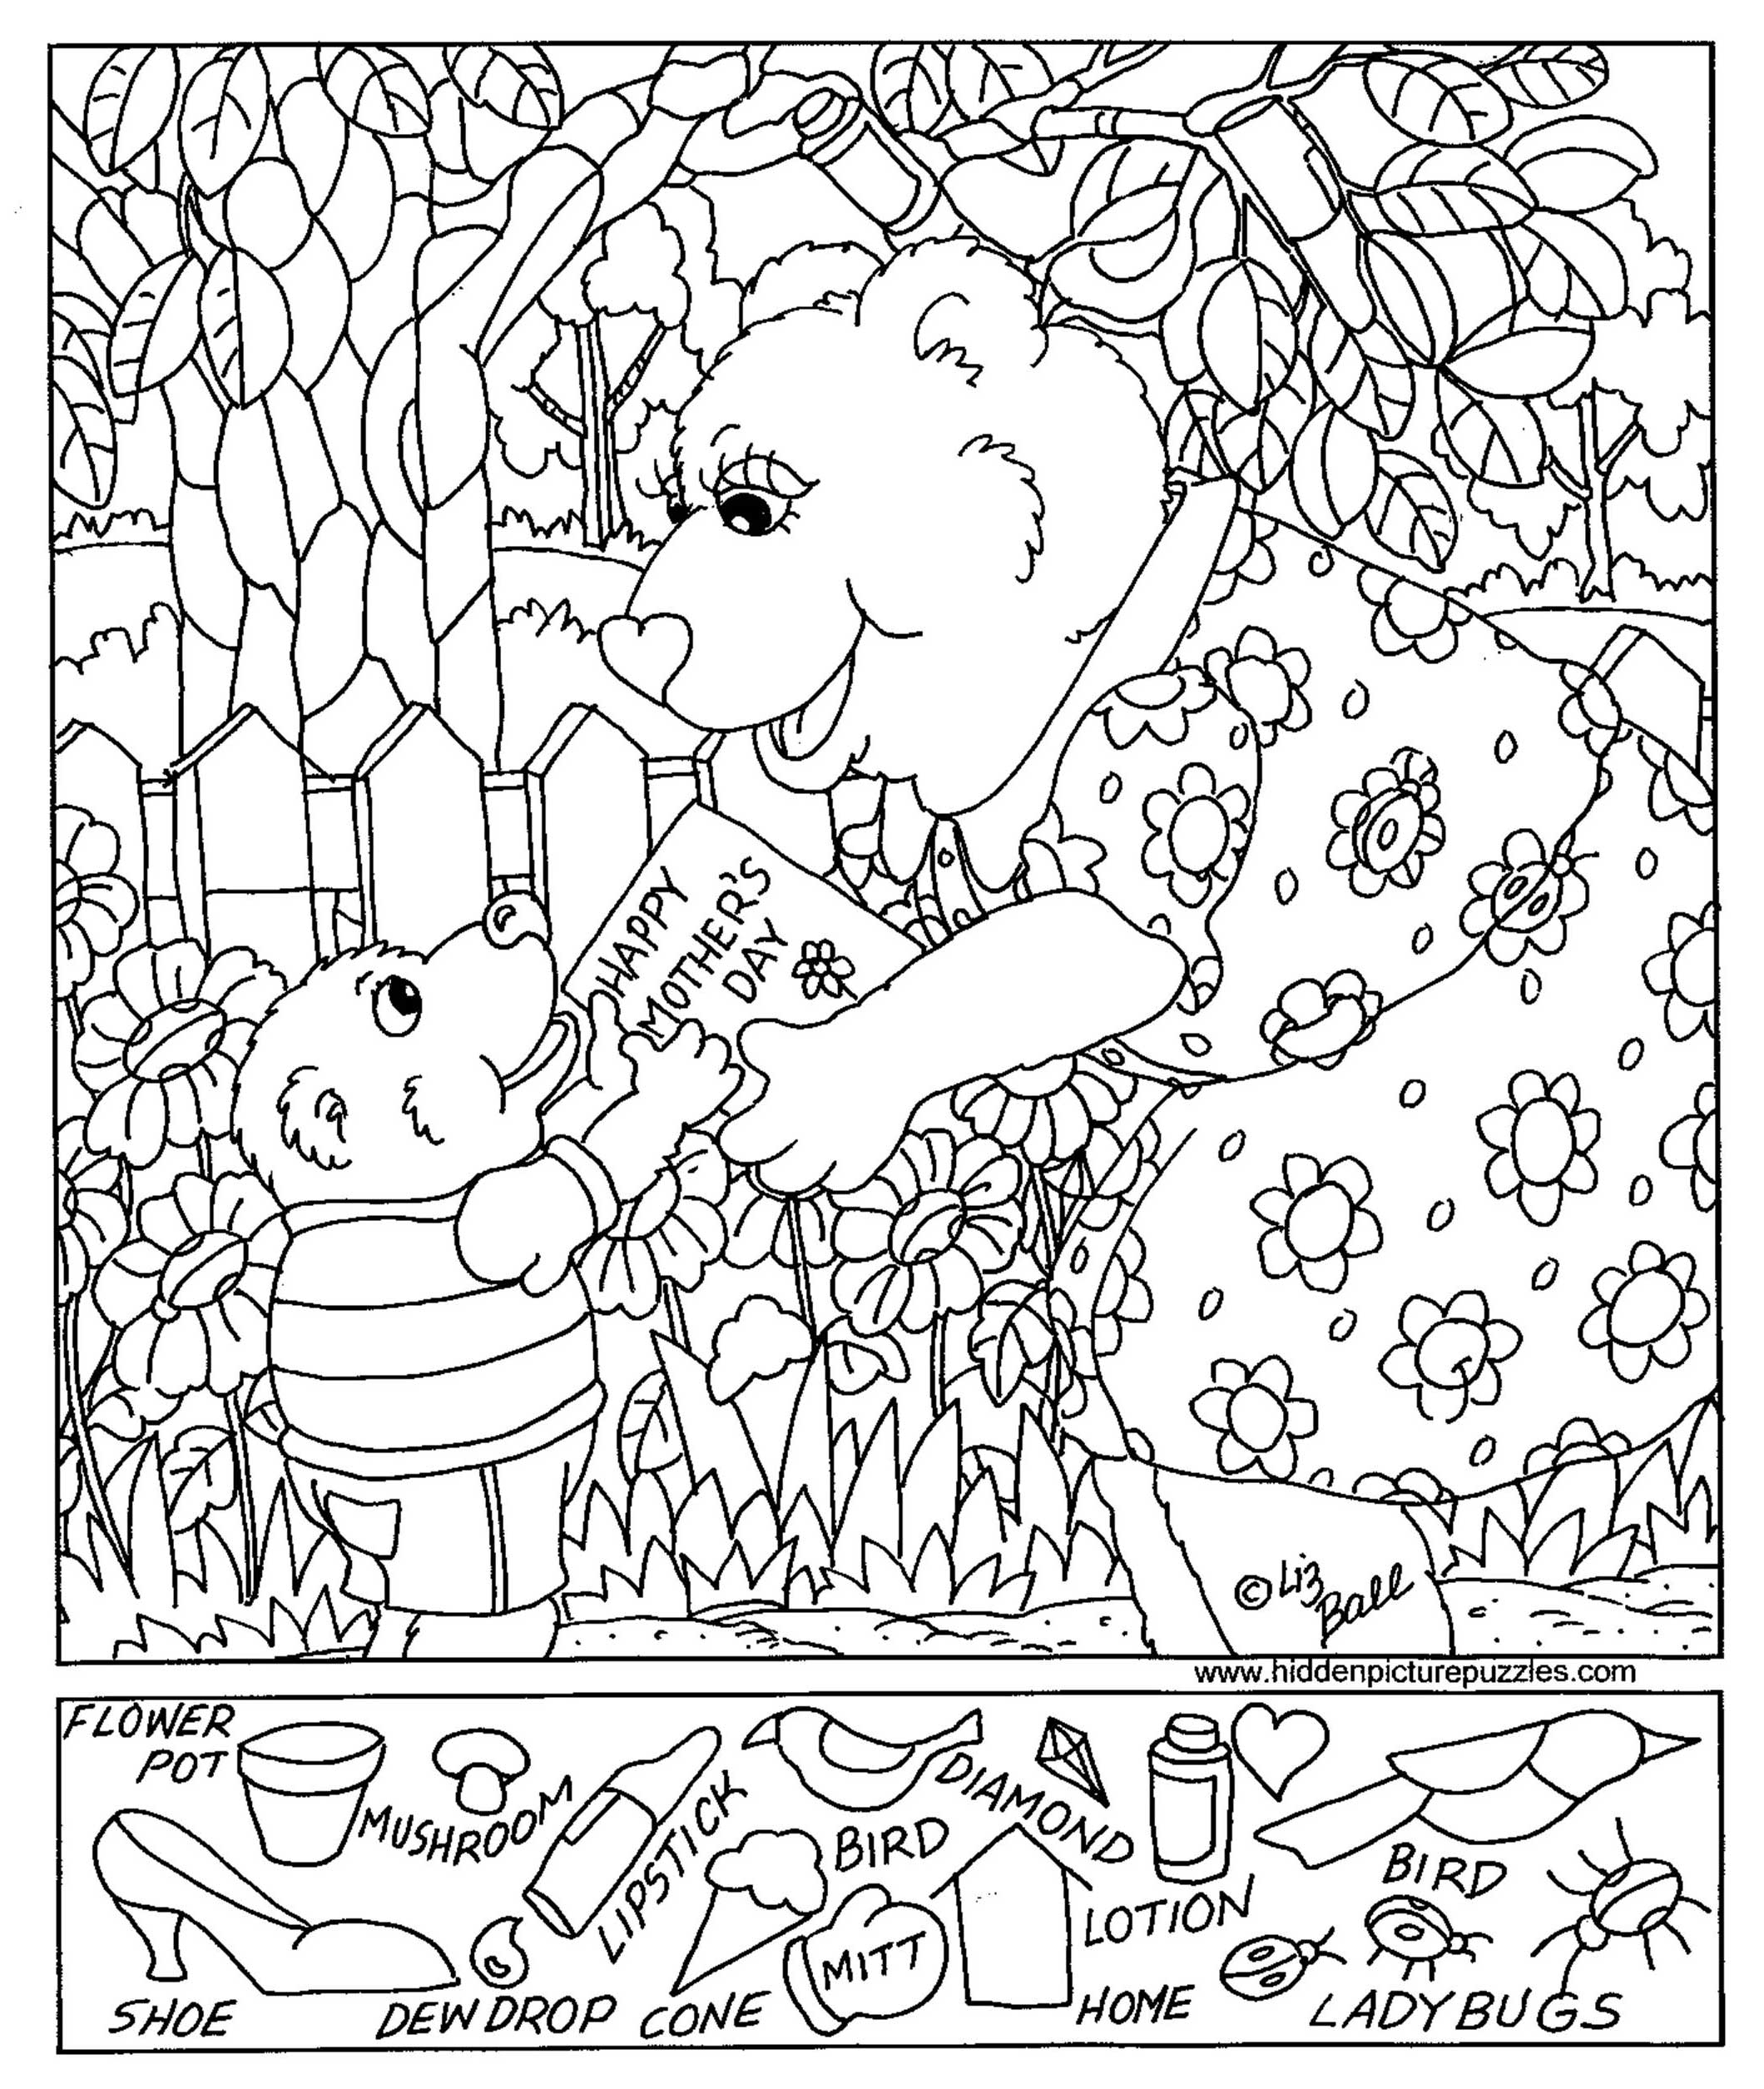 Free Printable Hidden Pictures For Kids At Allkidsnetwork - Free Printable Hidden Pictures For Adults